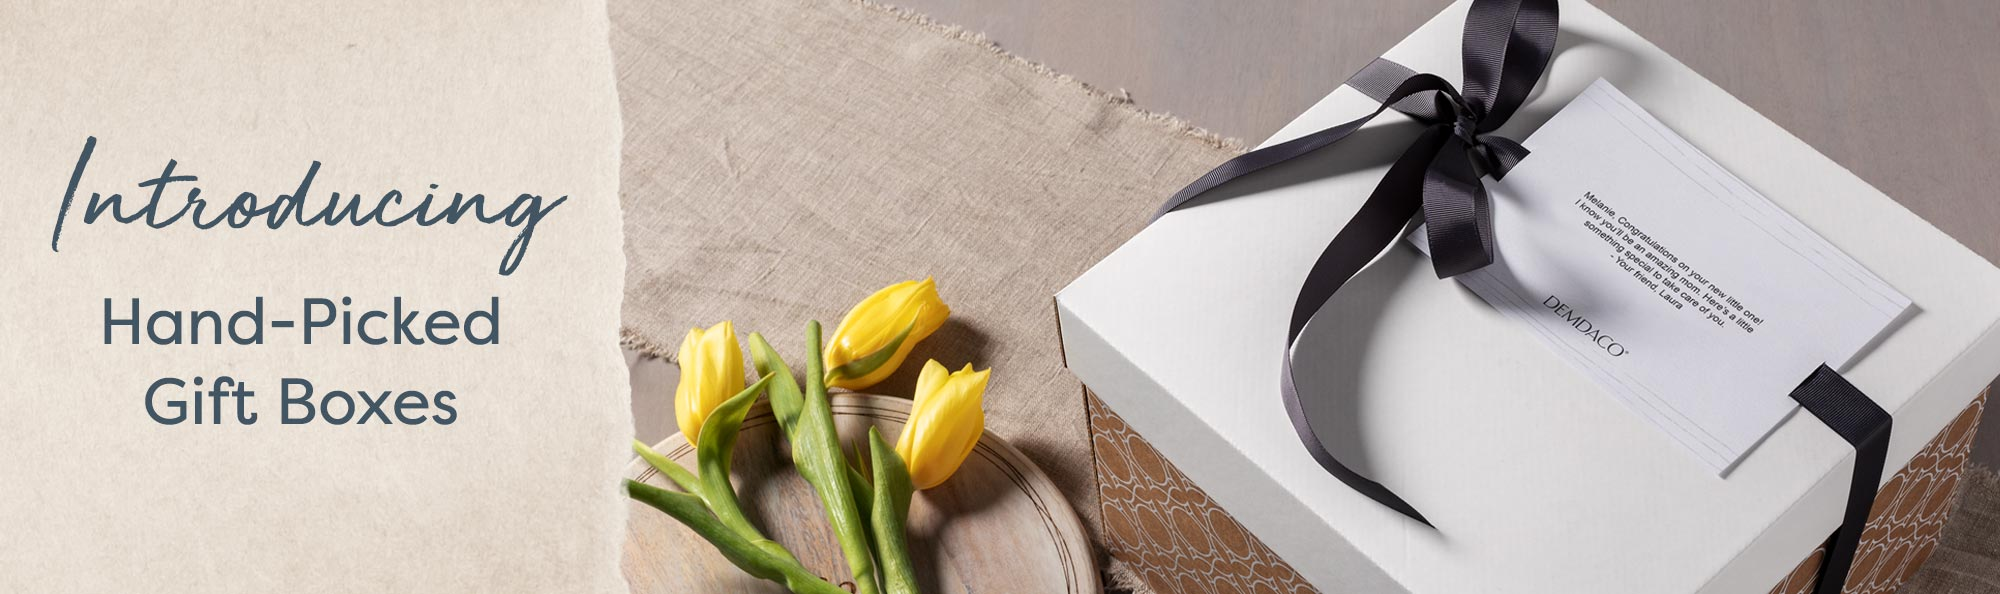 Introducing Hand-Picked Gift Boxes. White and gold box tied with a dark ribbon, next to yellow flowers.